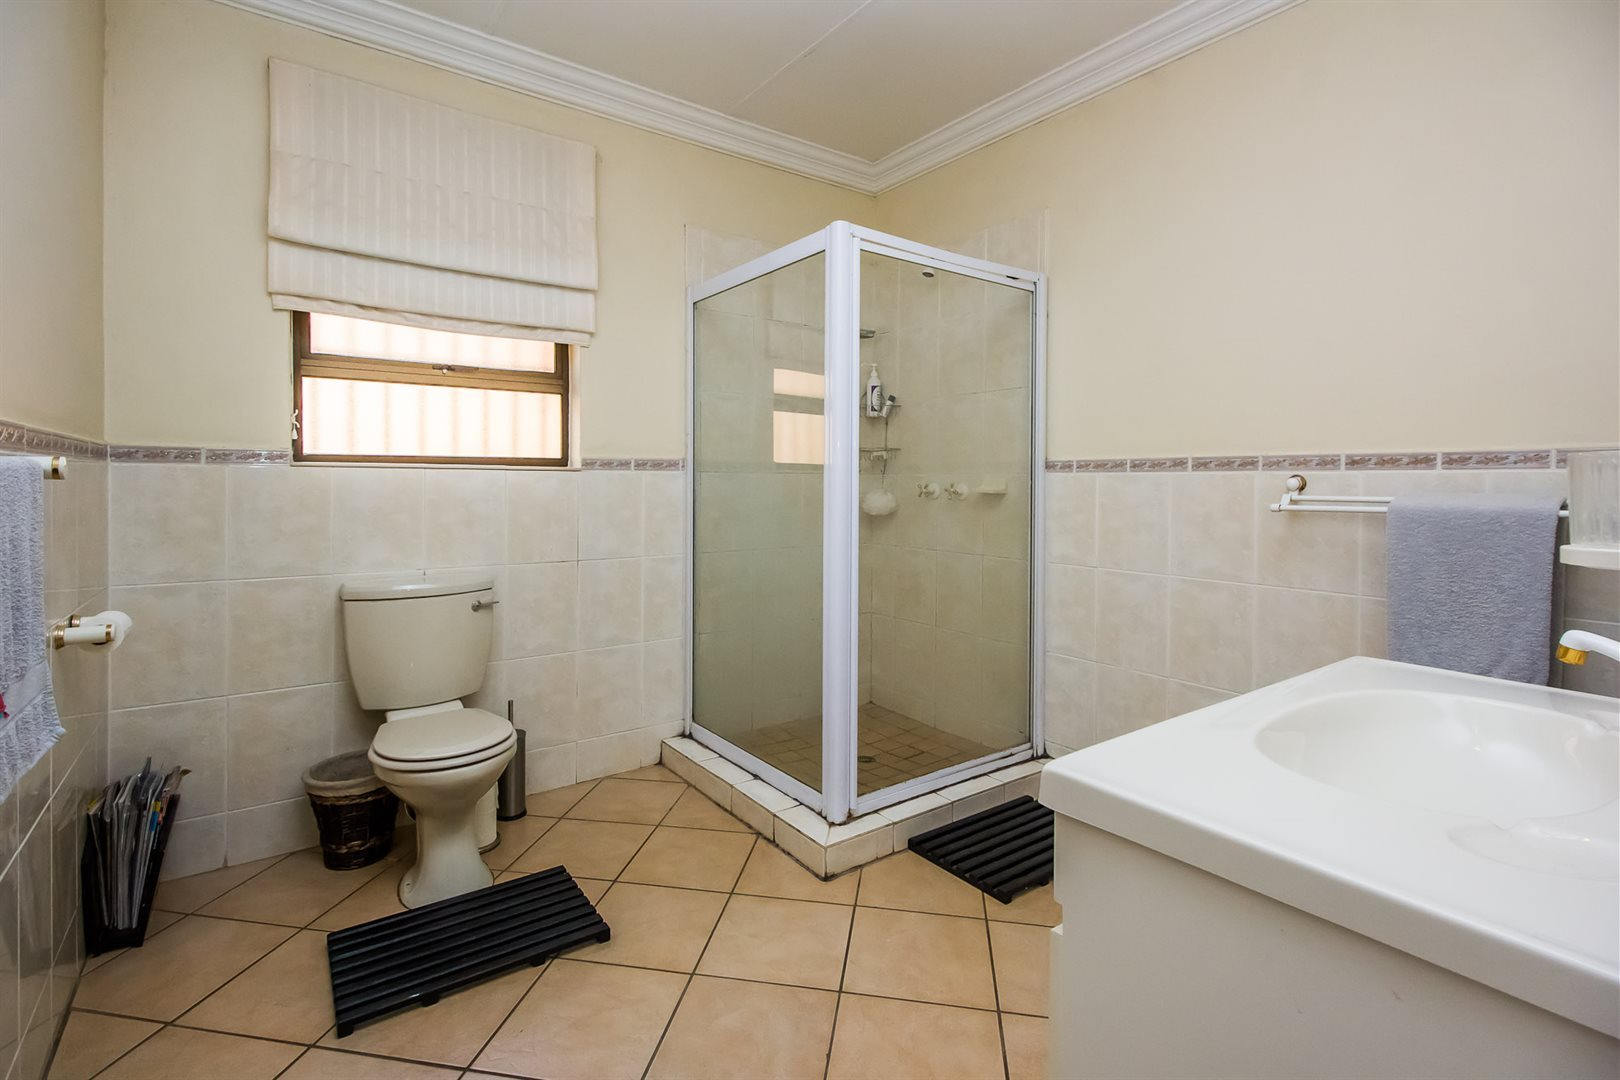 Waterkloof Heights property for sale. Ref No: 13538019. Picture no 15